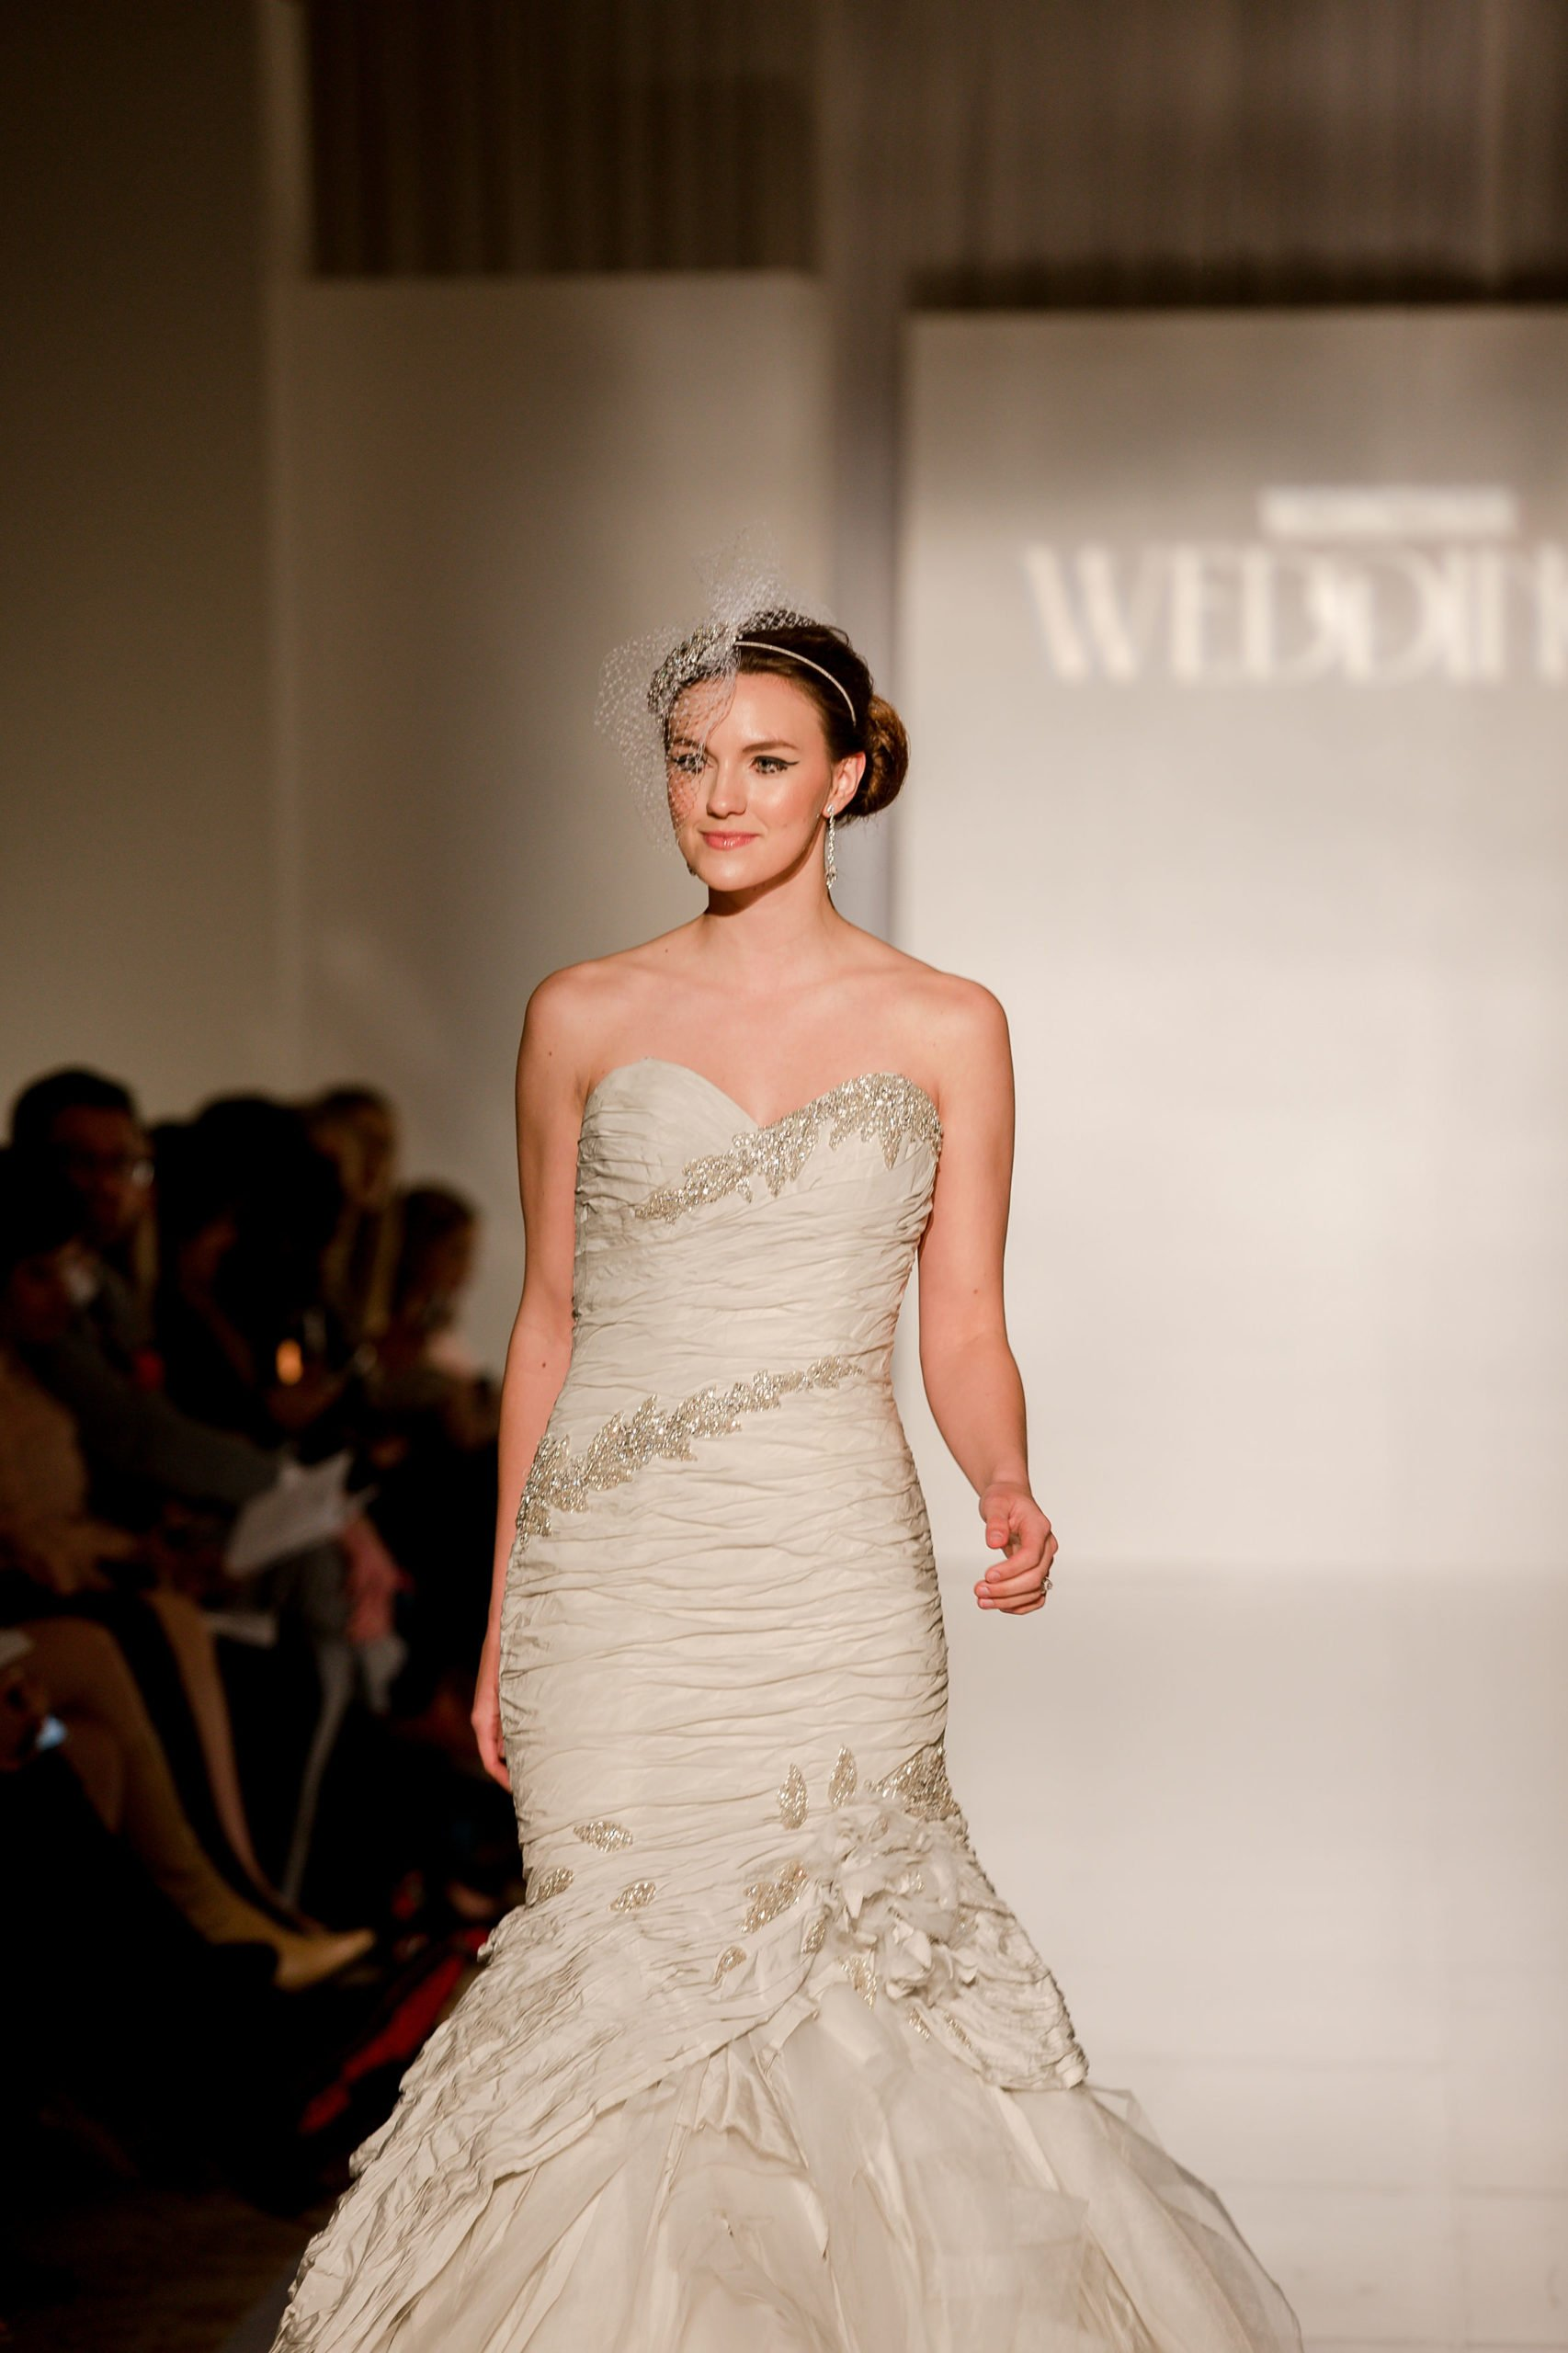 Washingtonians-wedding-showcase